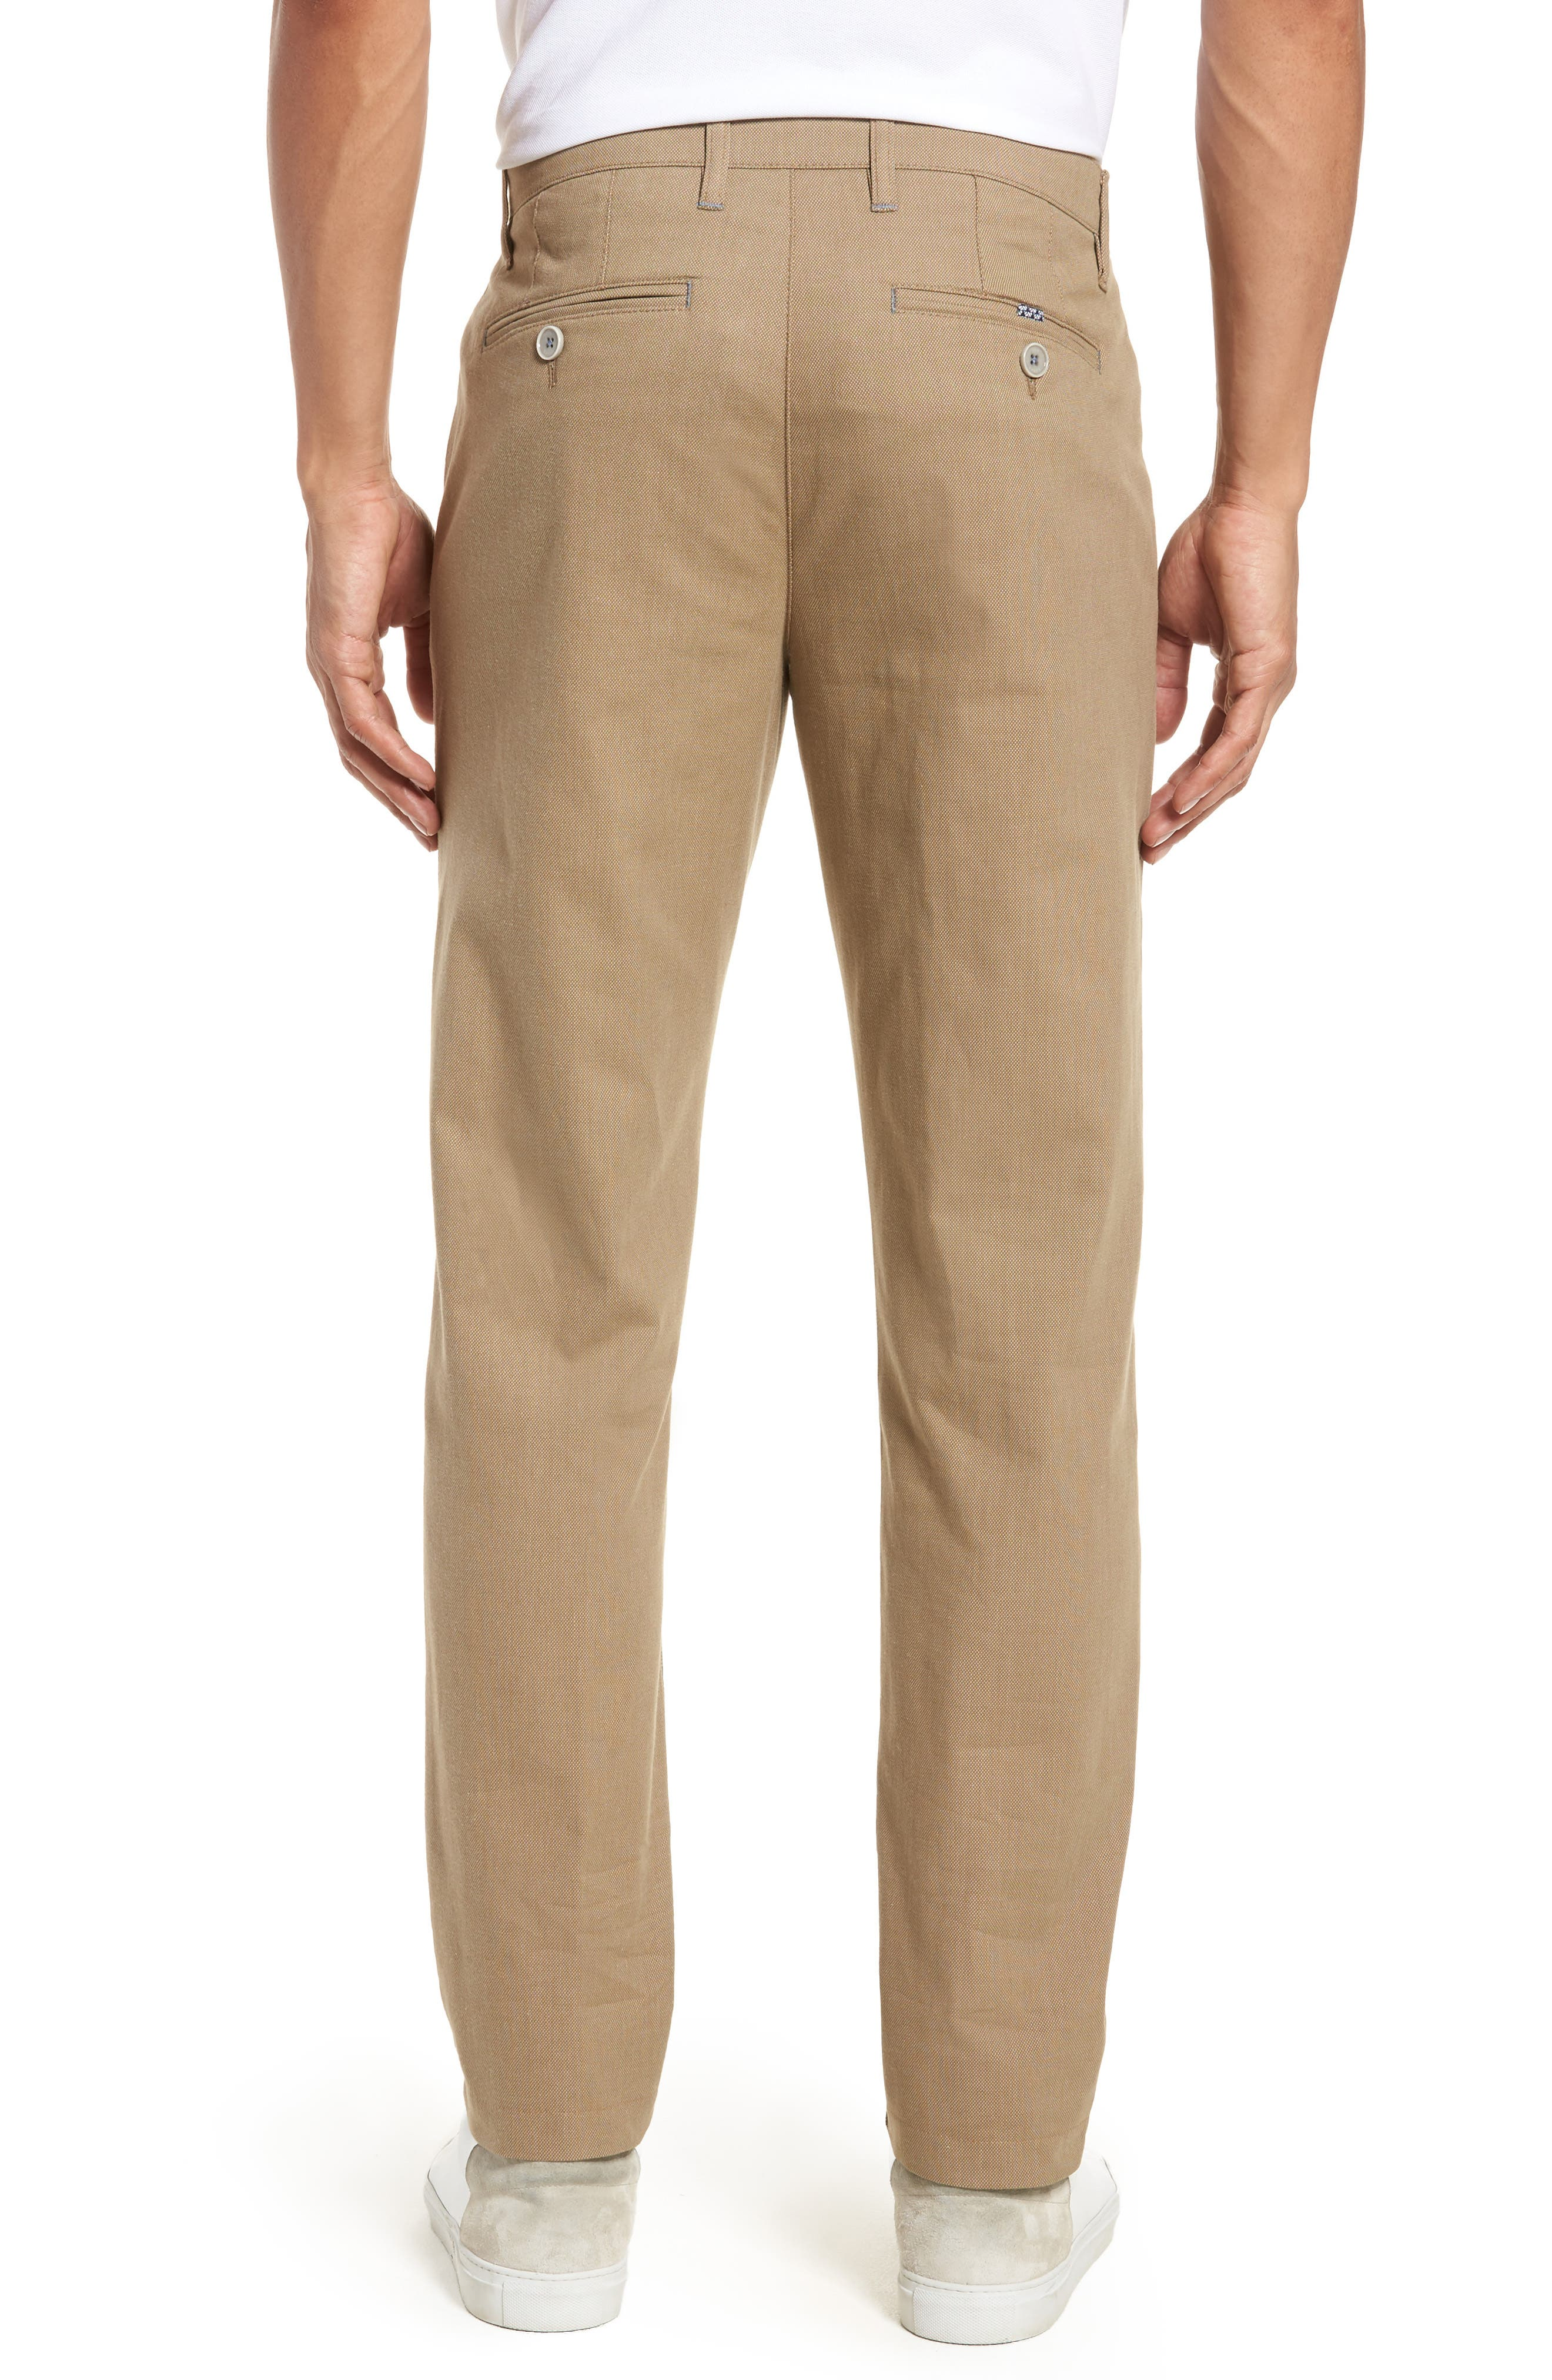 Holclas Classic Fit Chino Pants,                             Alternate thumbnail 2, color,                             250